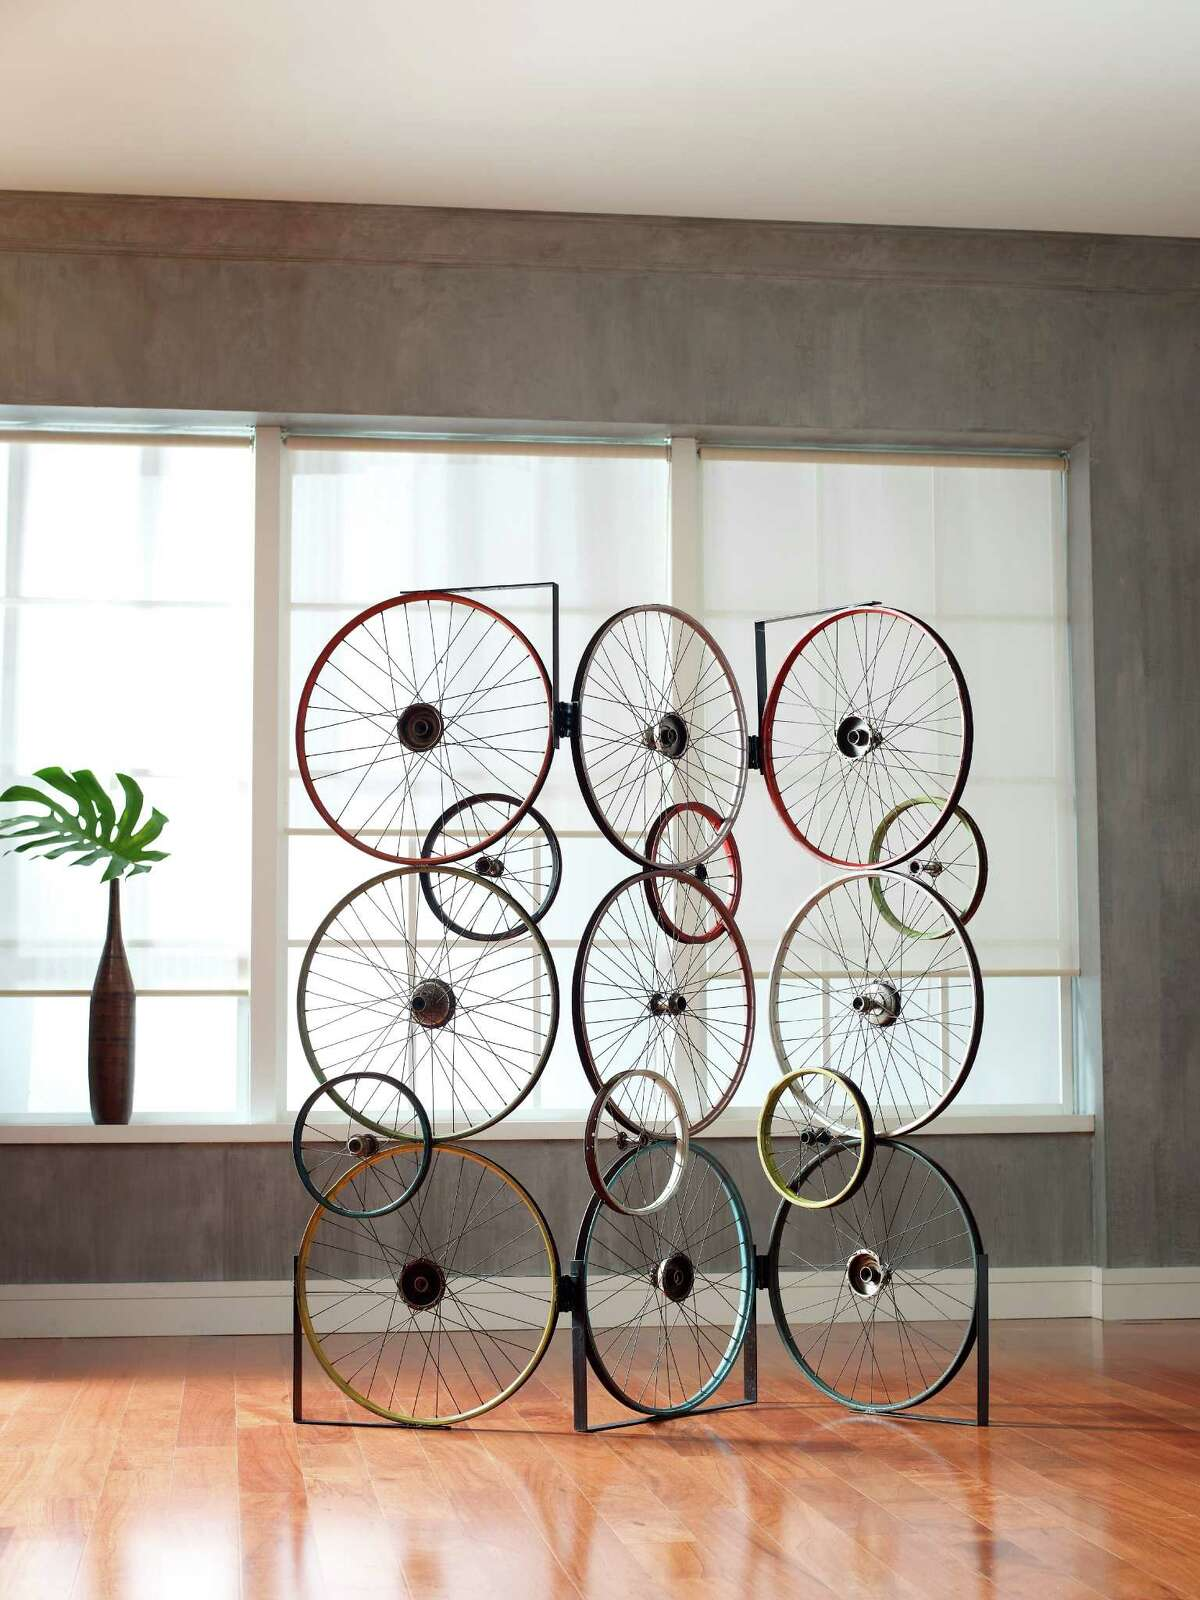 The Bicycle Collection was created by upcycling discarded bicycle rims, pedals and frames. The Bicycle Screen is made from three panels that are hinged together, allowing for many configurations.